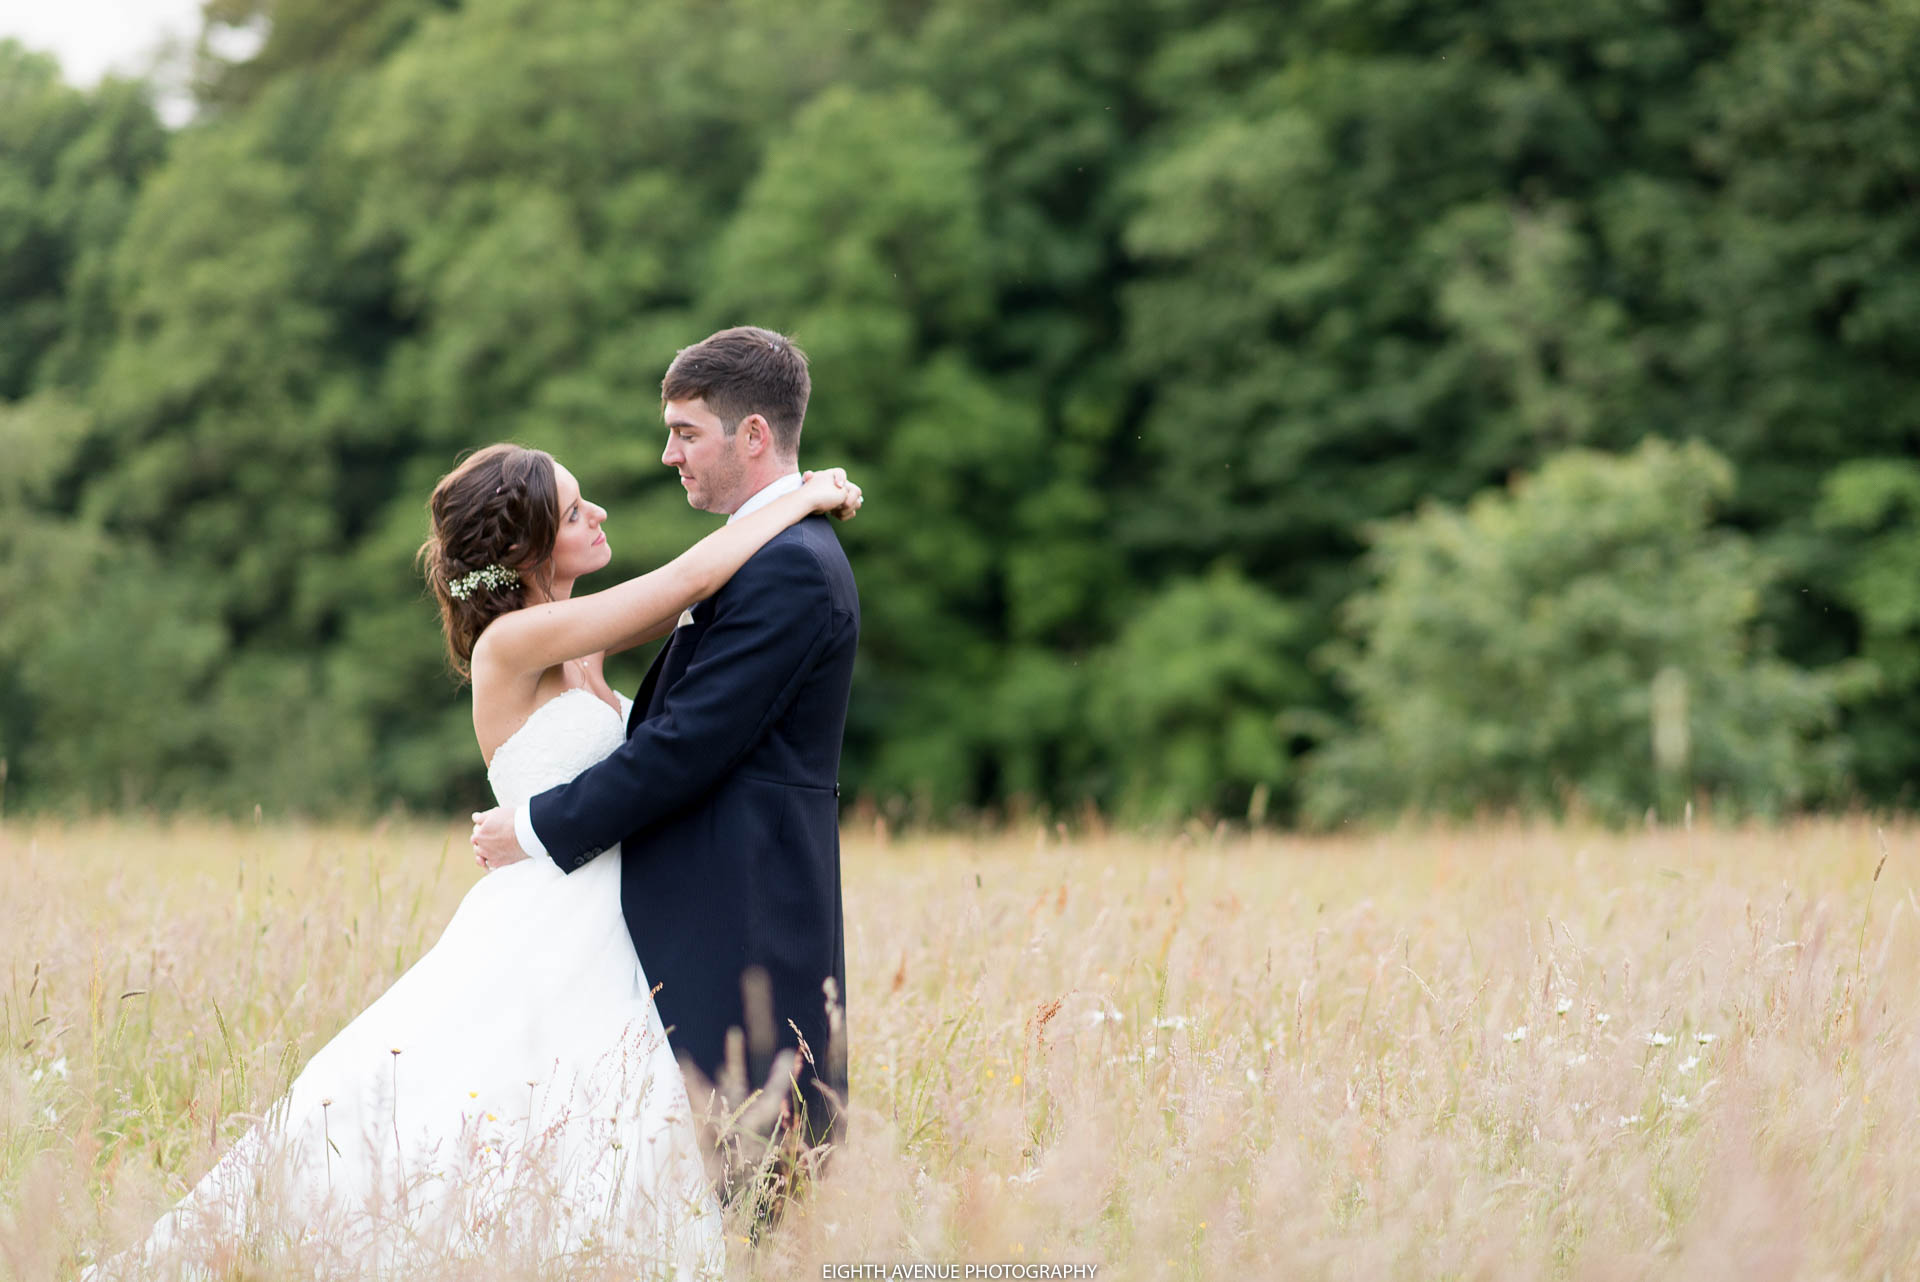 Bride and groom in long grass field